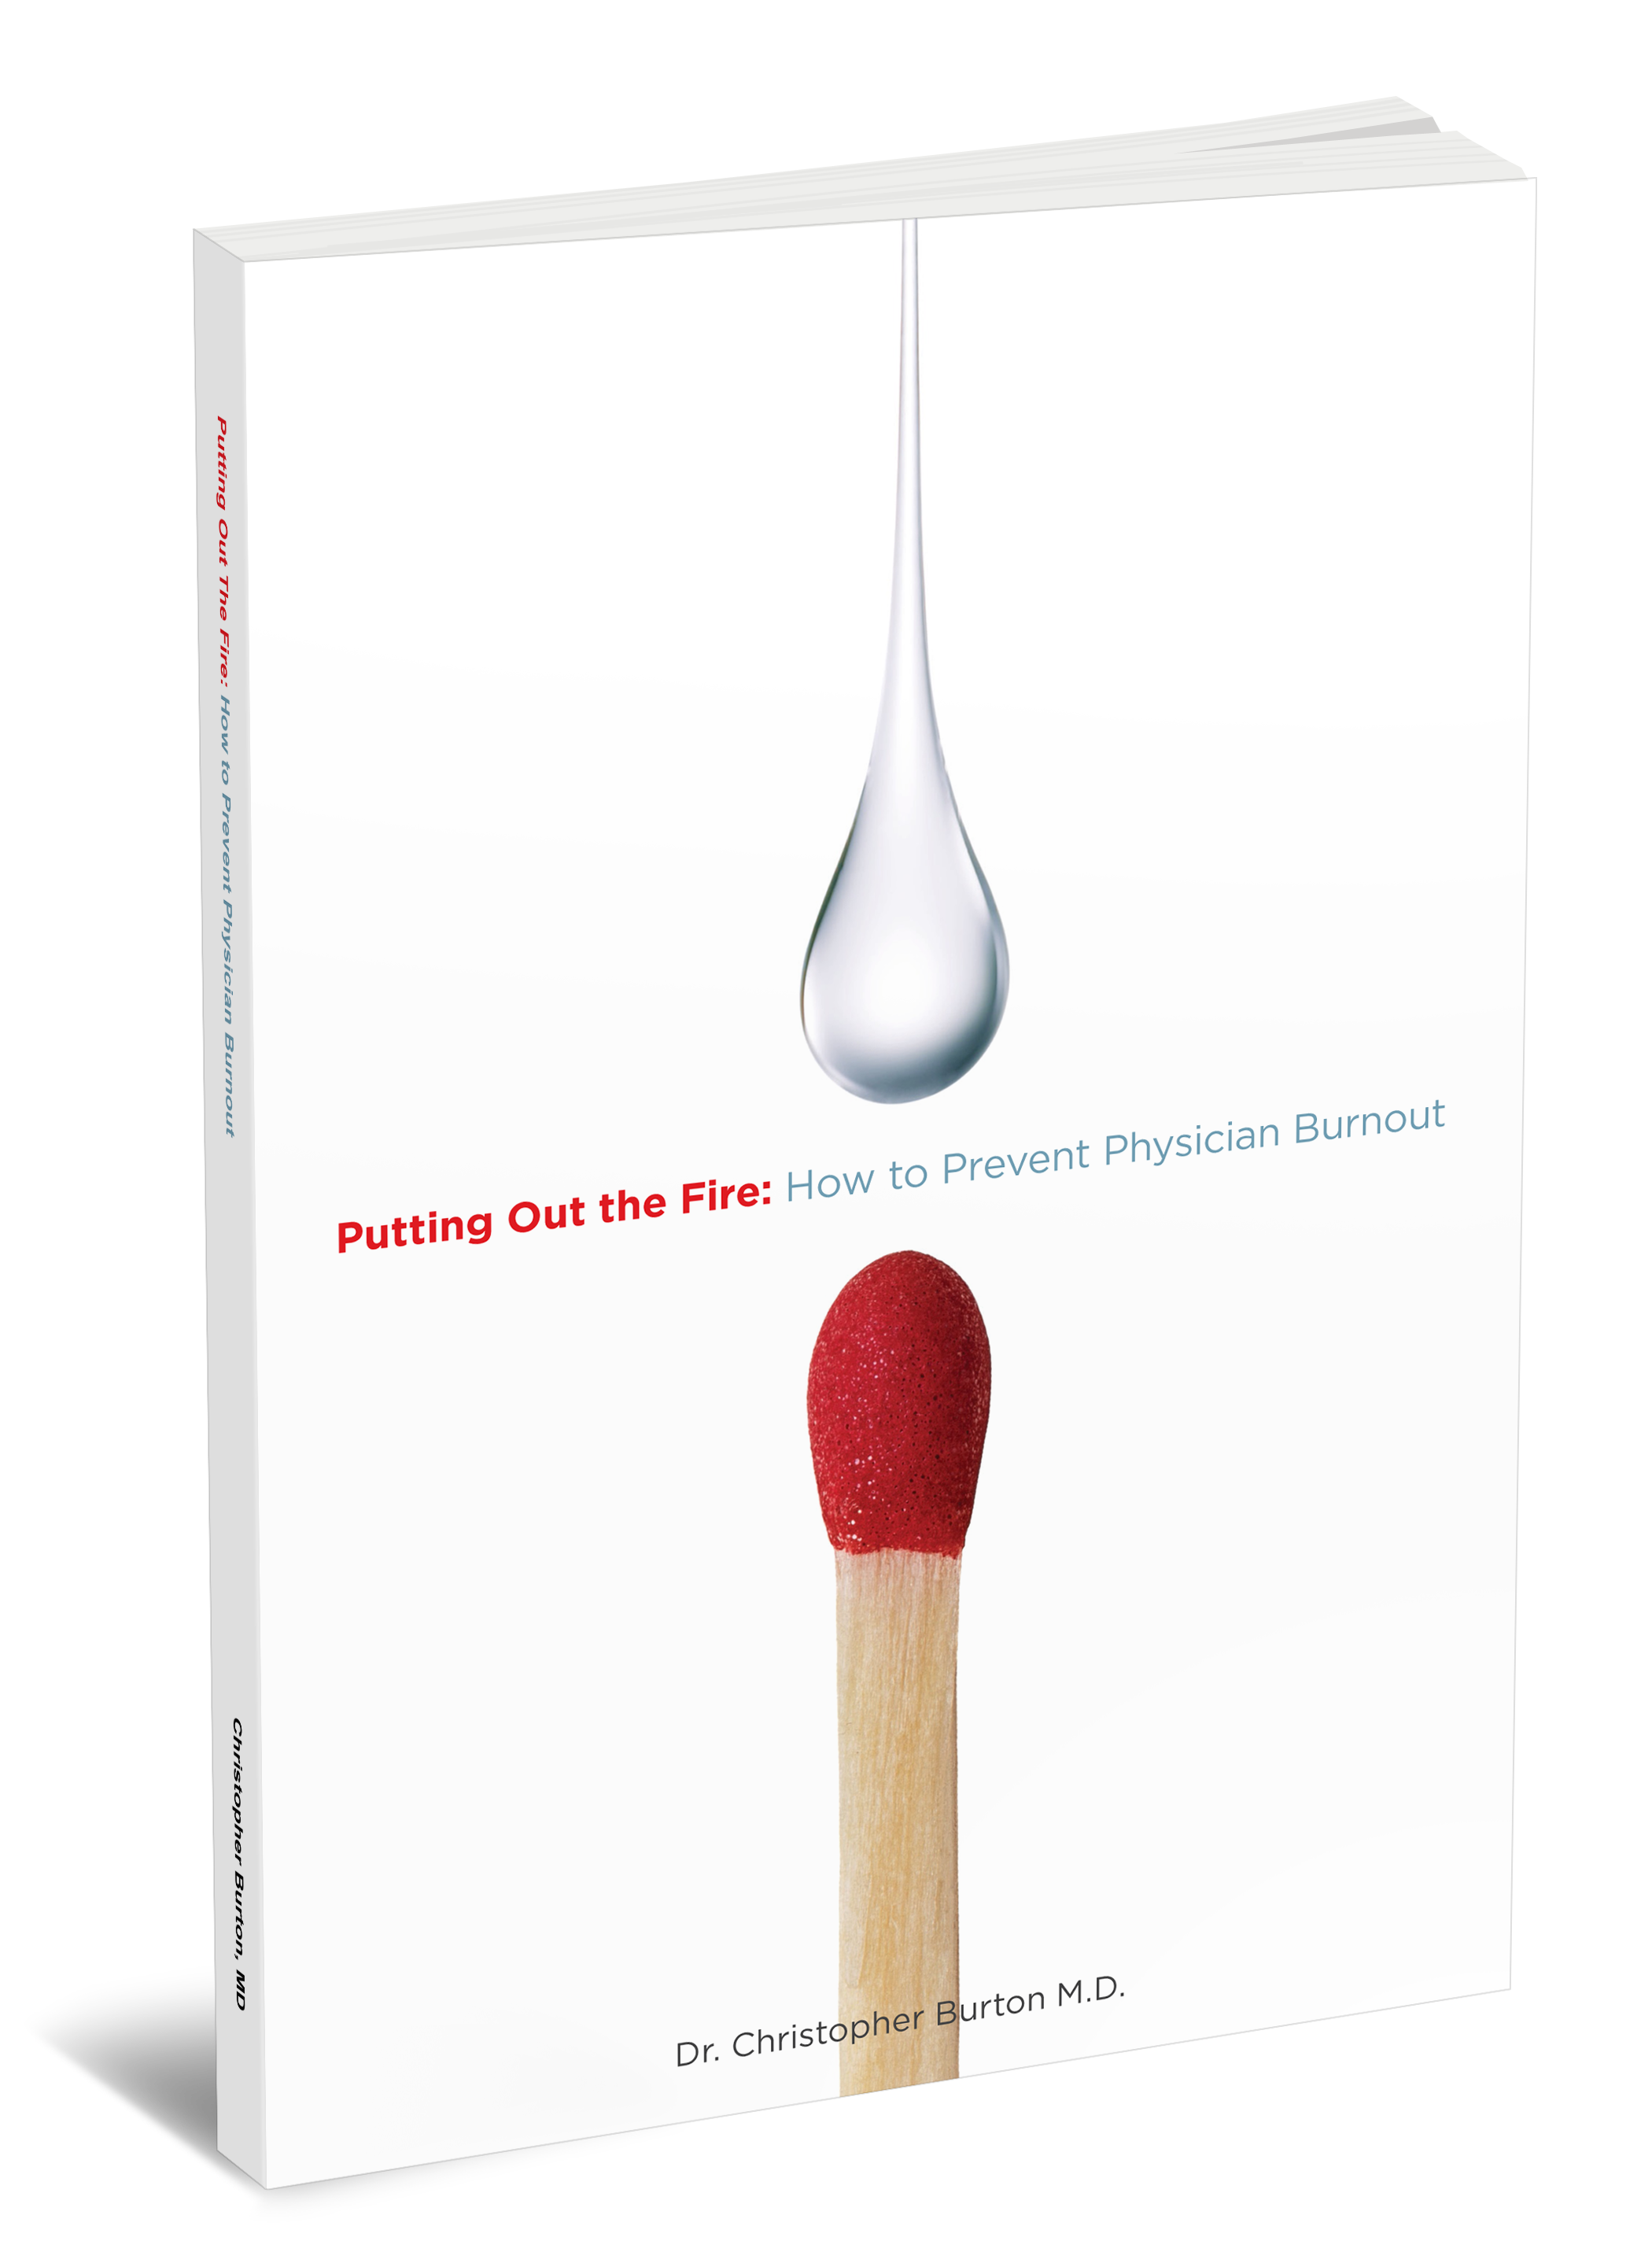 Putting Out the Fire: How to Prevent Physician Burnout book